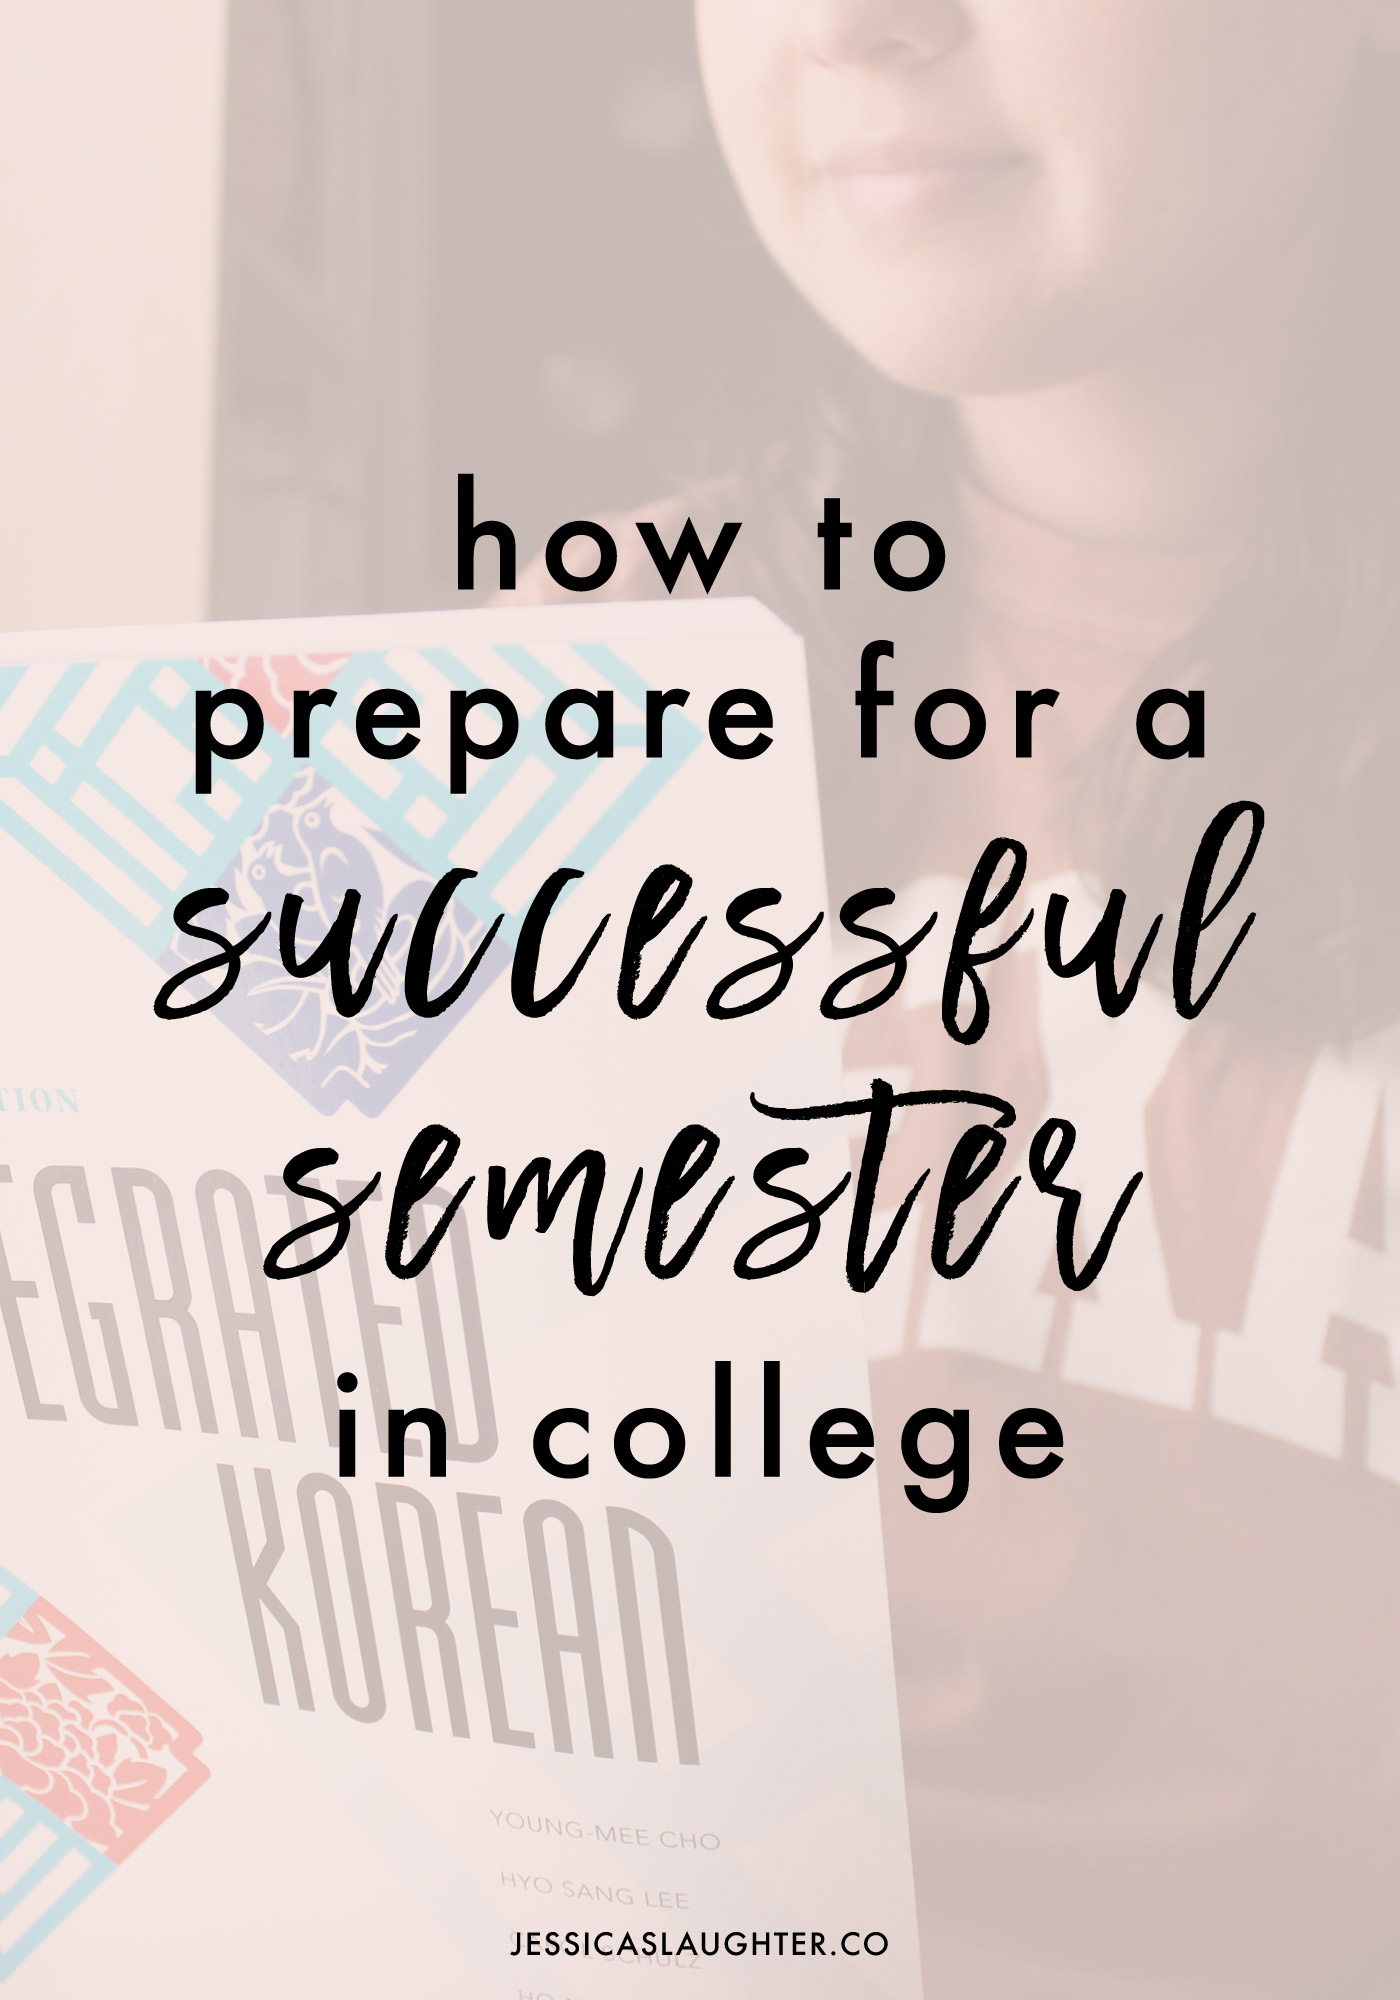 How To Prepare For A Successful Semester In College | Whether it's your first year in college, or you're just getting one semester closer to graduation, I'm sharing my favorite tips for getting ready for it! #PayPalIt #CG #Ad